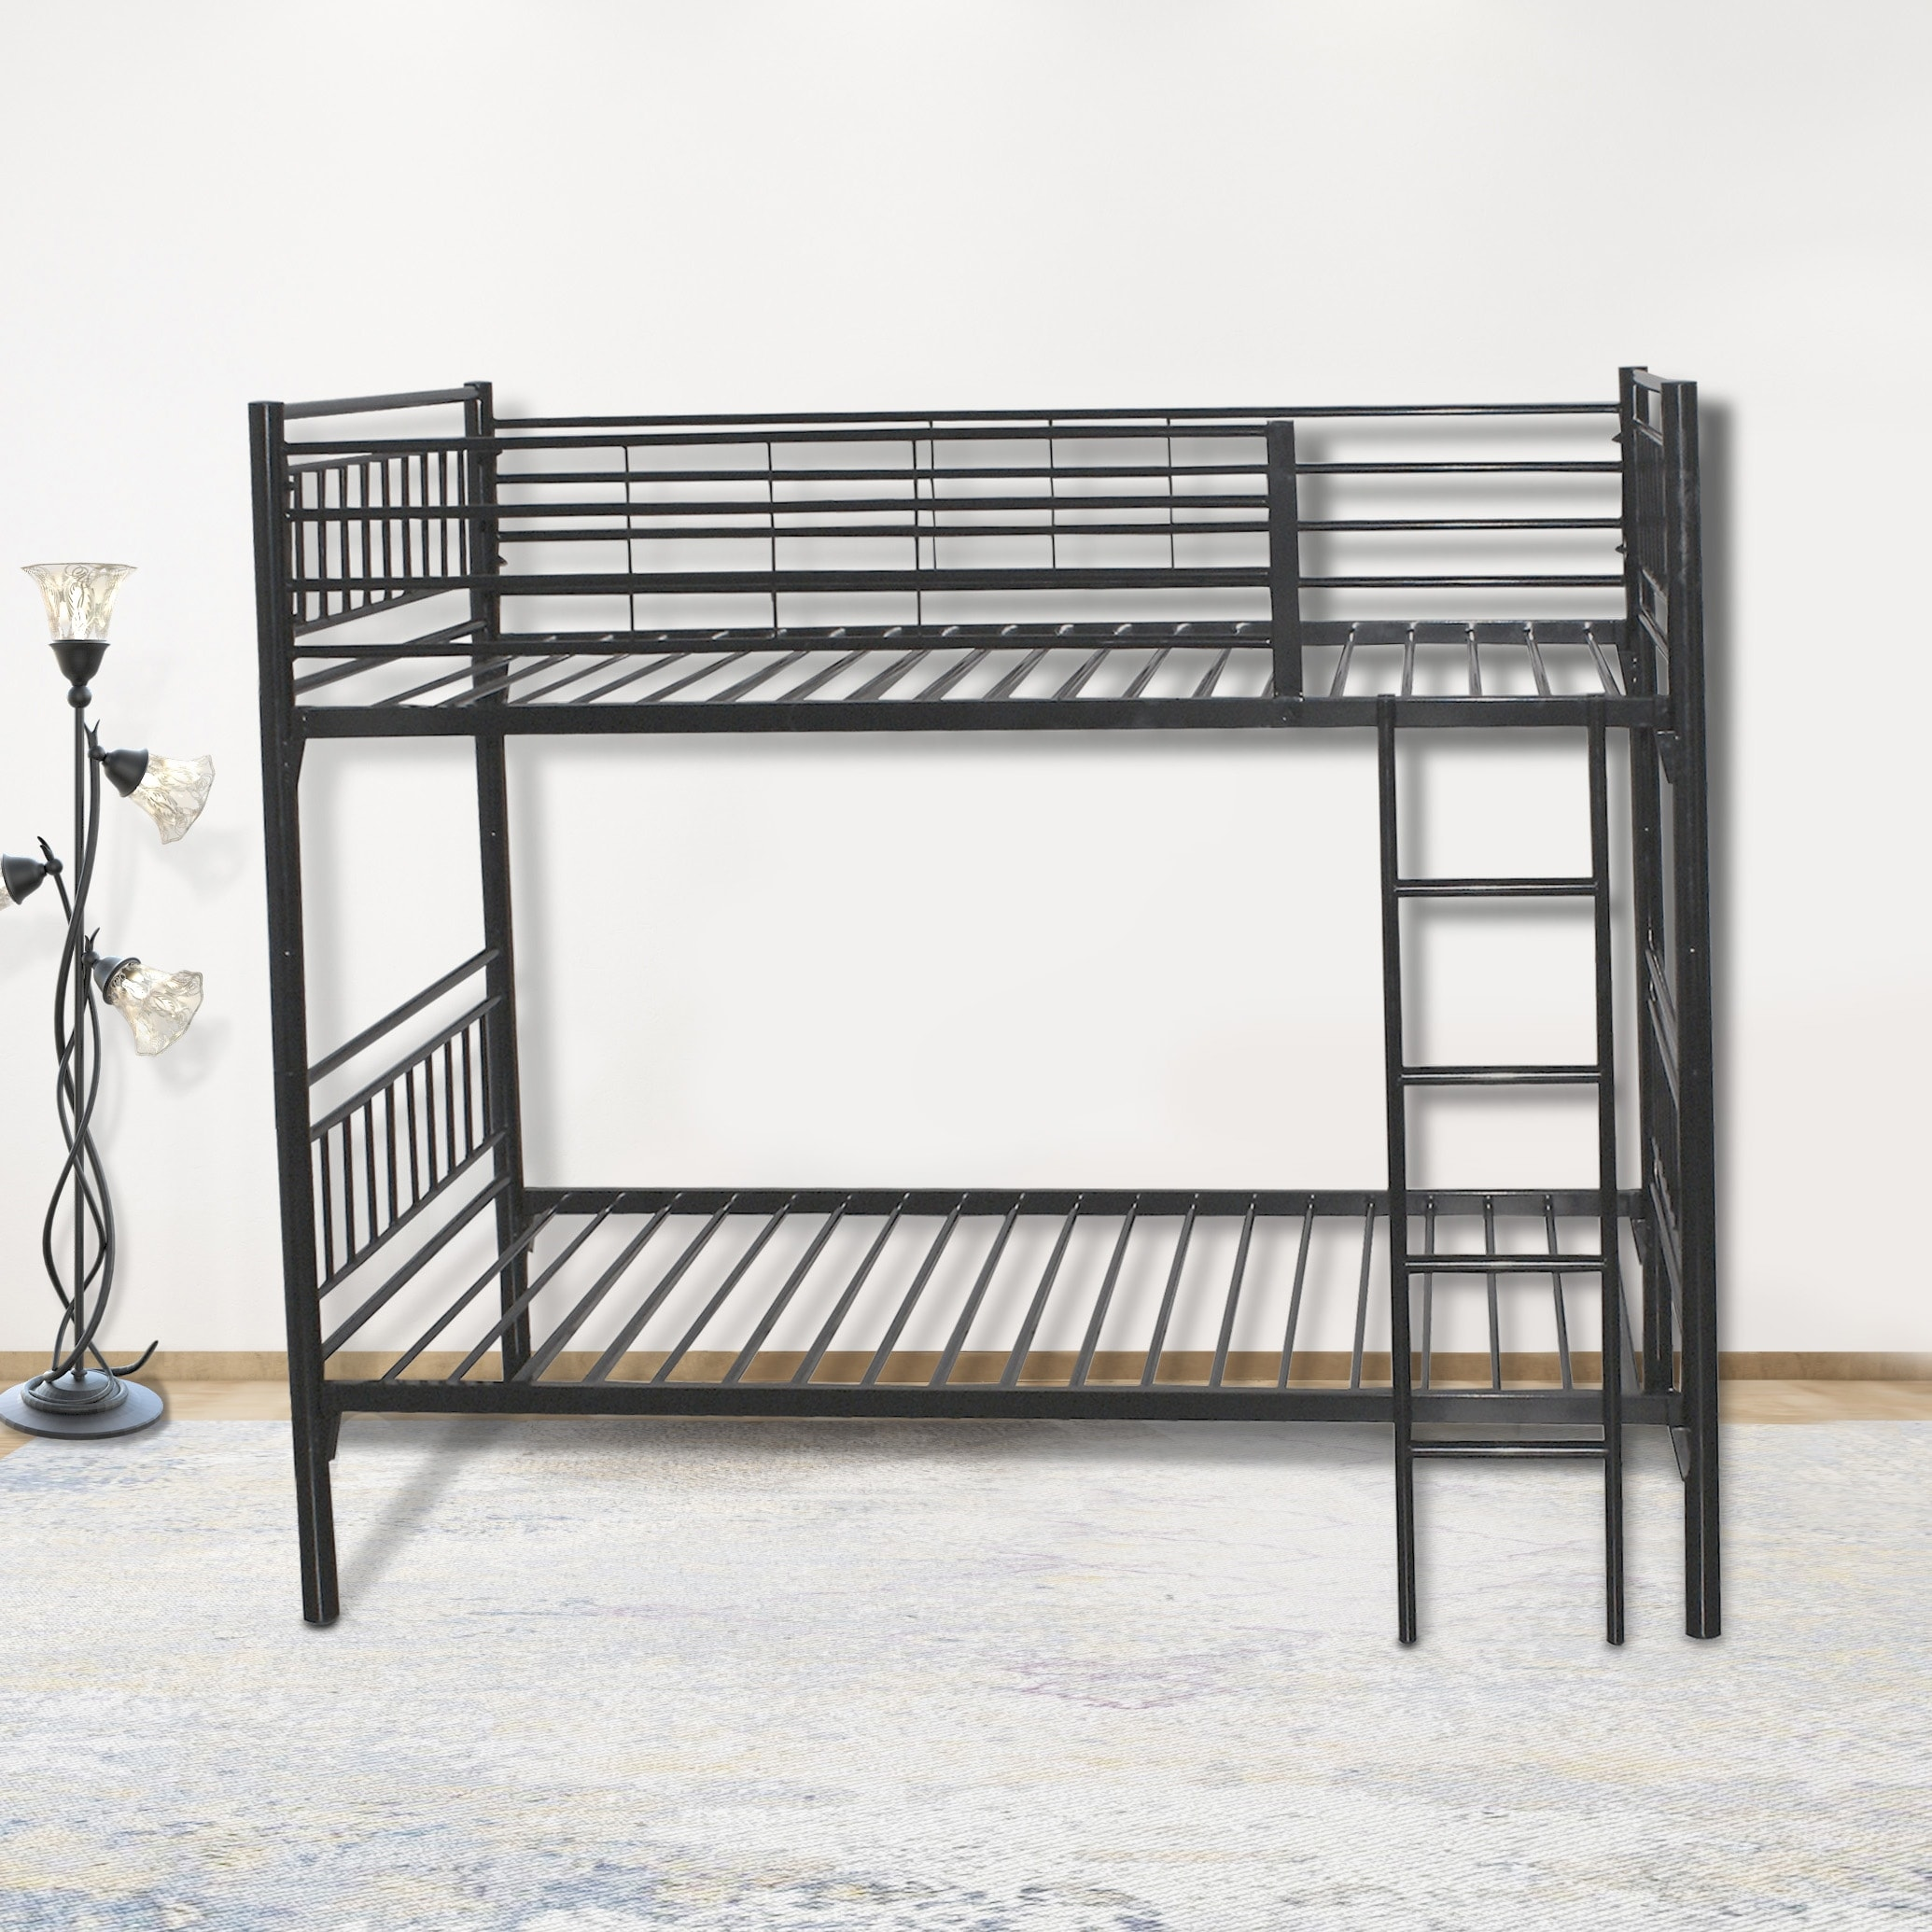 Picture of: Round Metal Tube Black Twin Bunk Beds With Build In Ladder For Easy Access To Upper Bunk On Sale Overstock 31664574